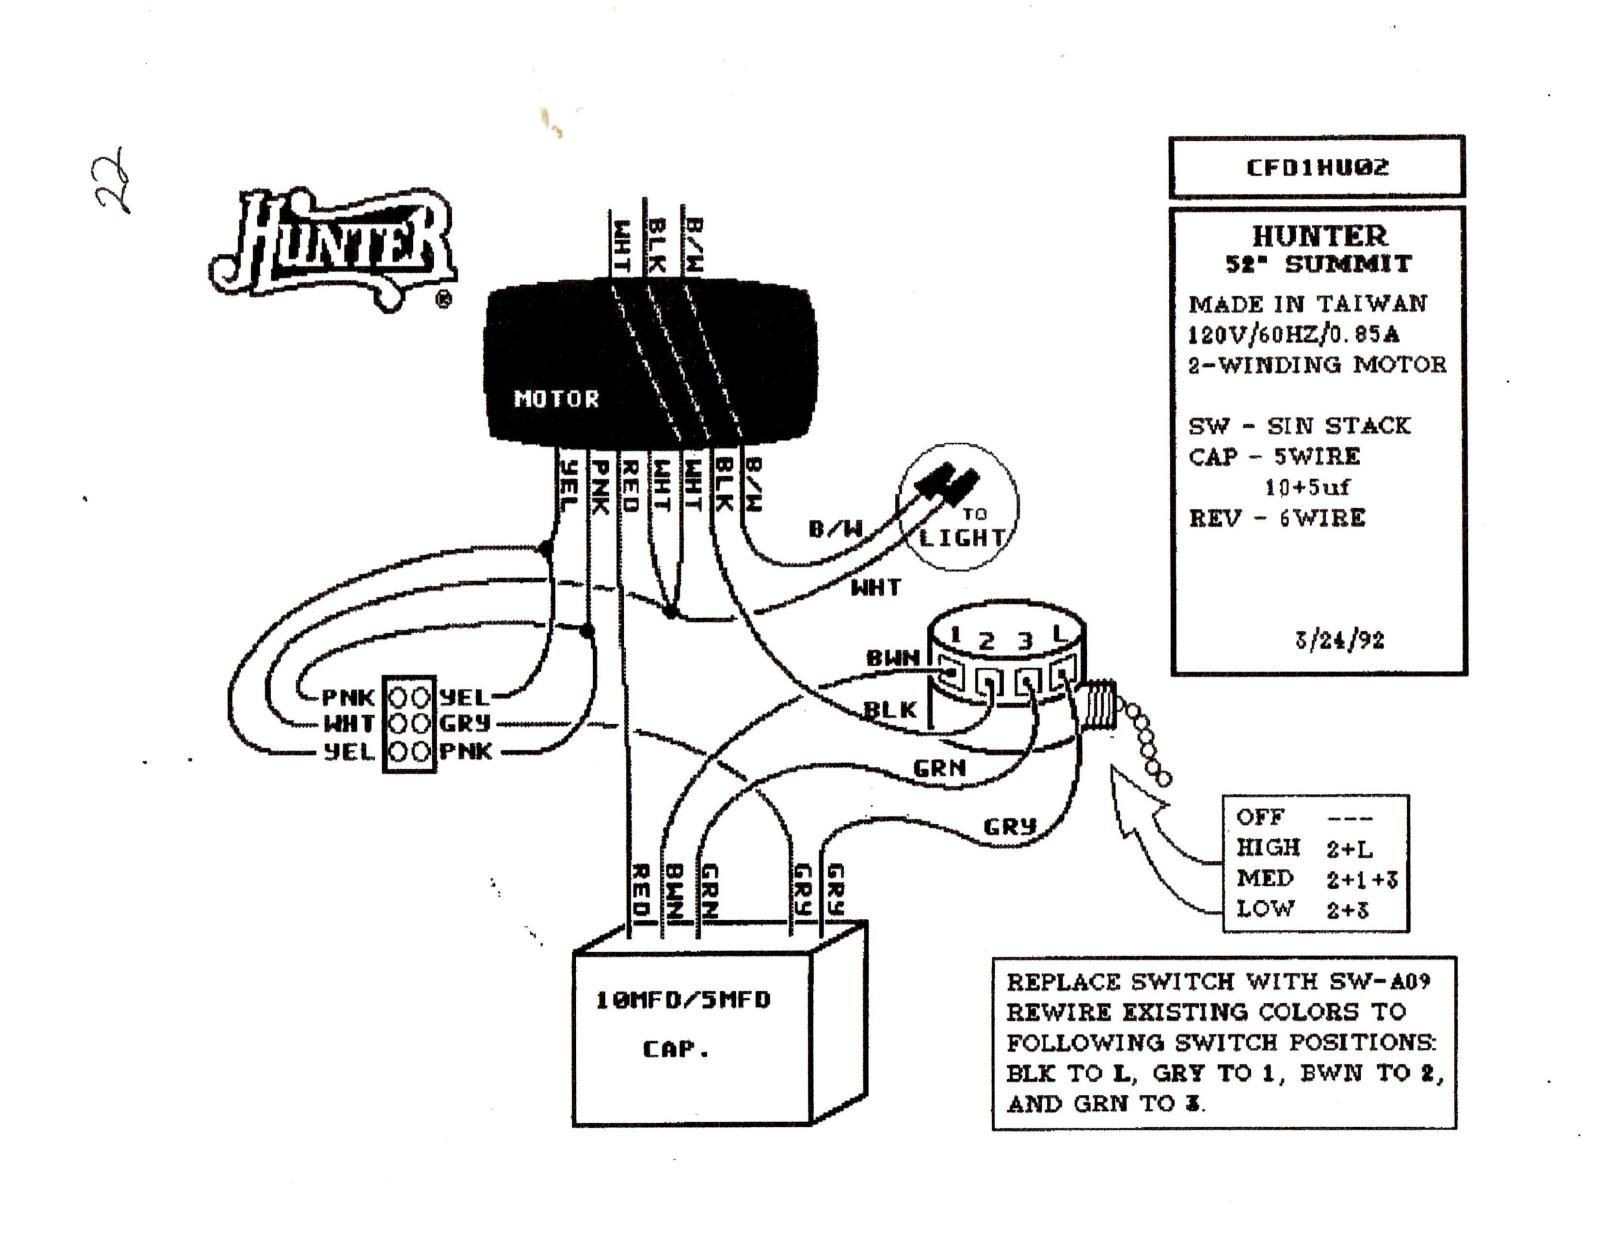 Wiring Diagram For Hunter Ceiling Fan With Three Sd 4 Wire